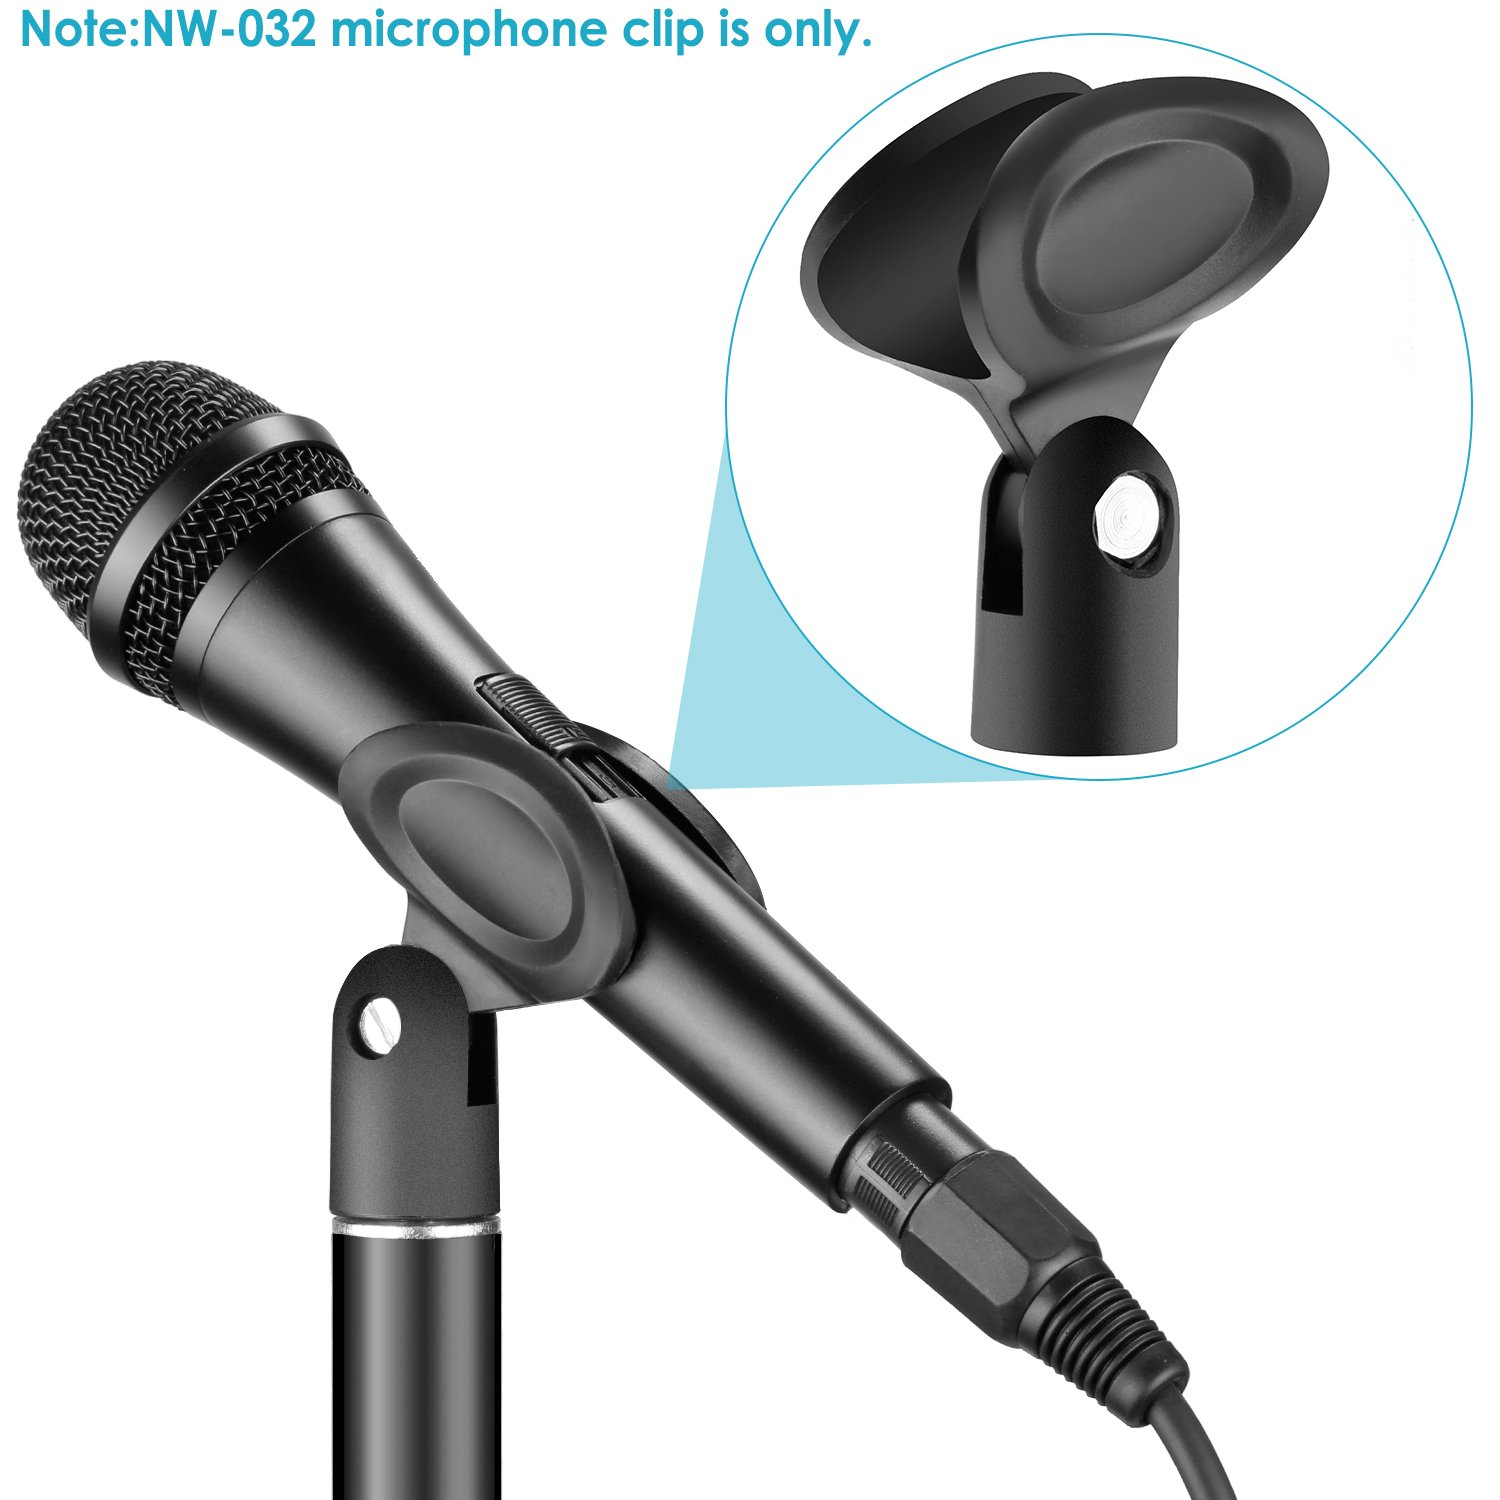 Neewer NW-032 Universal Microphone Clip Holders with 5//8-Inch Male to 3//8-Inch Female Metal Nut Adapters for Handheld Microphones Black